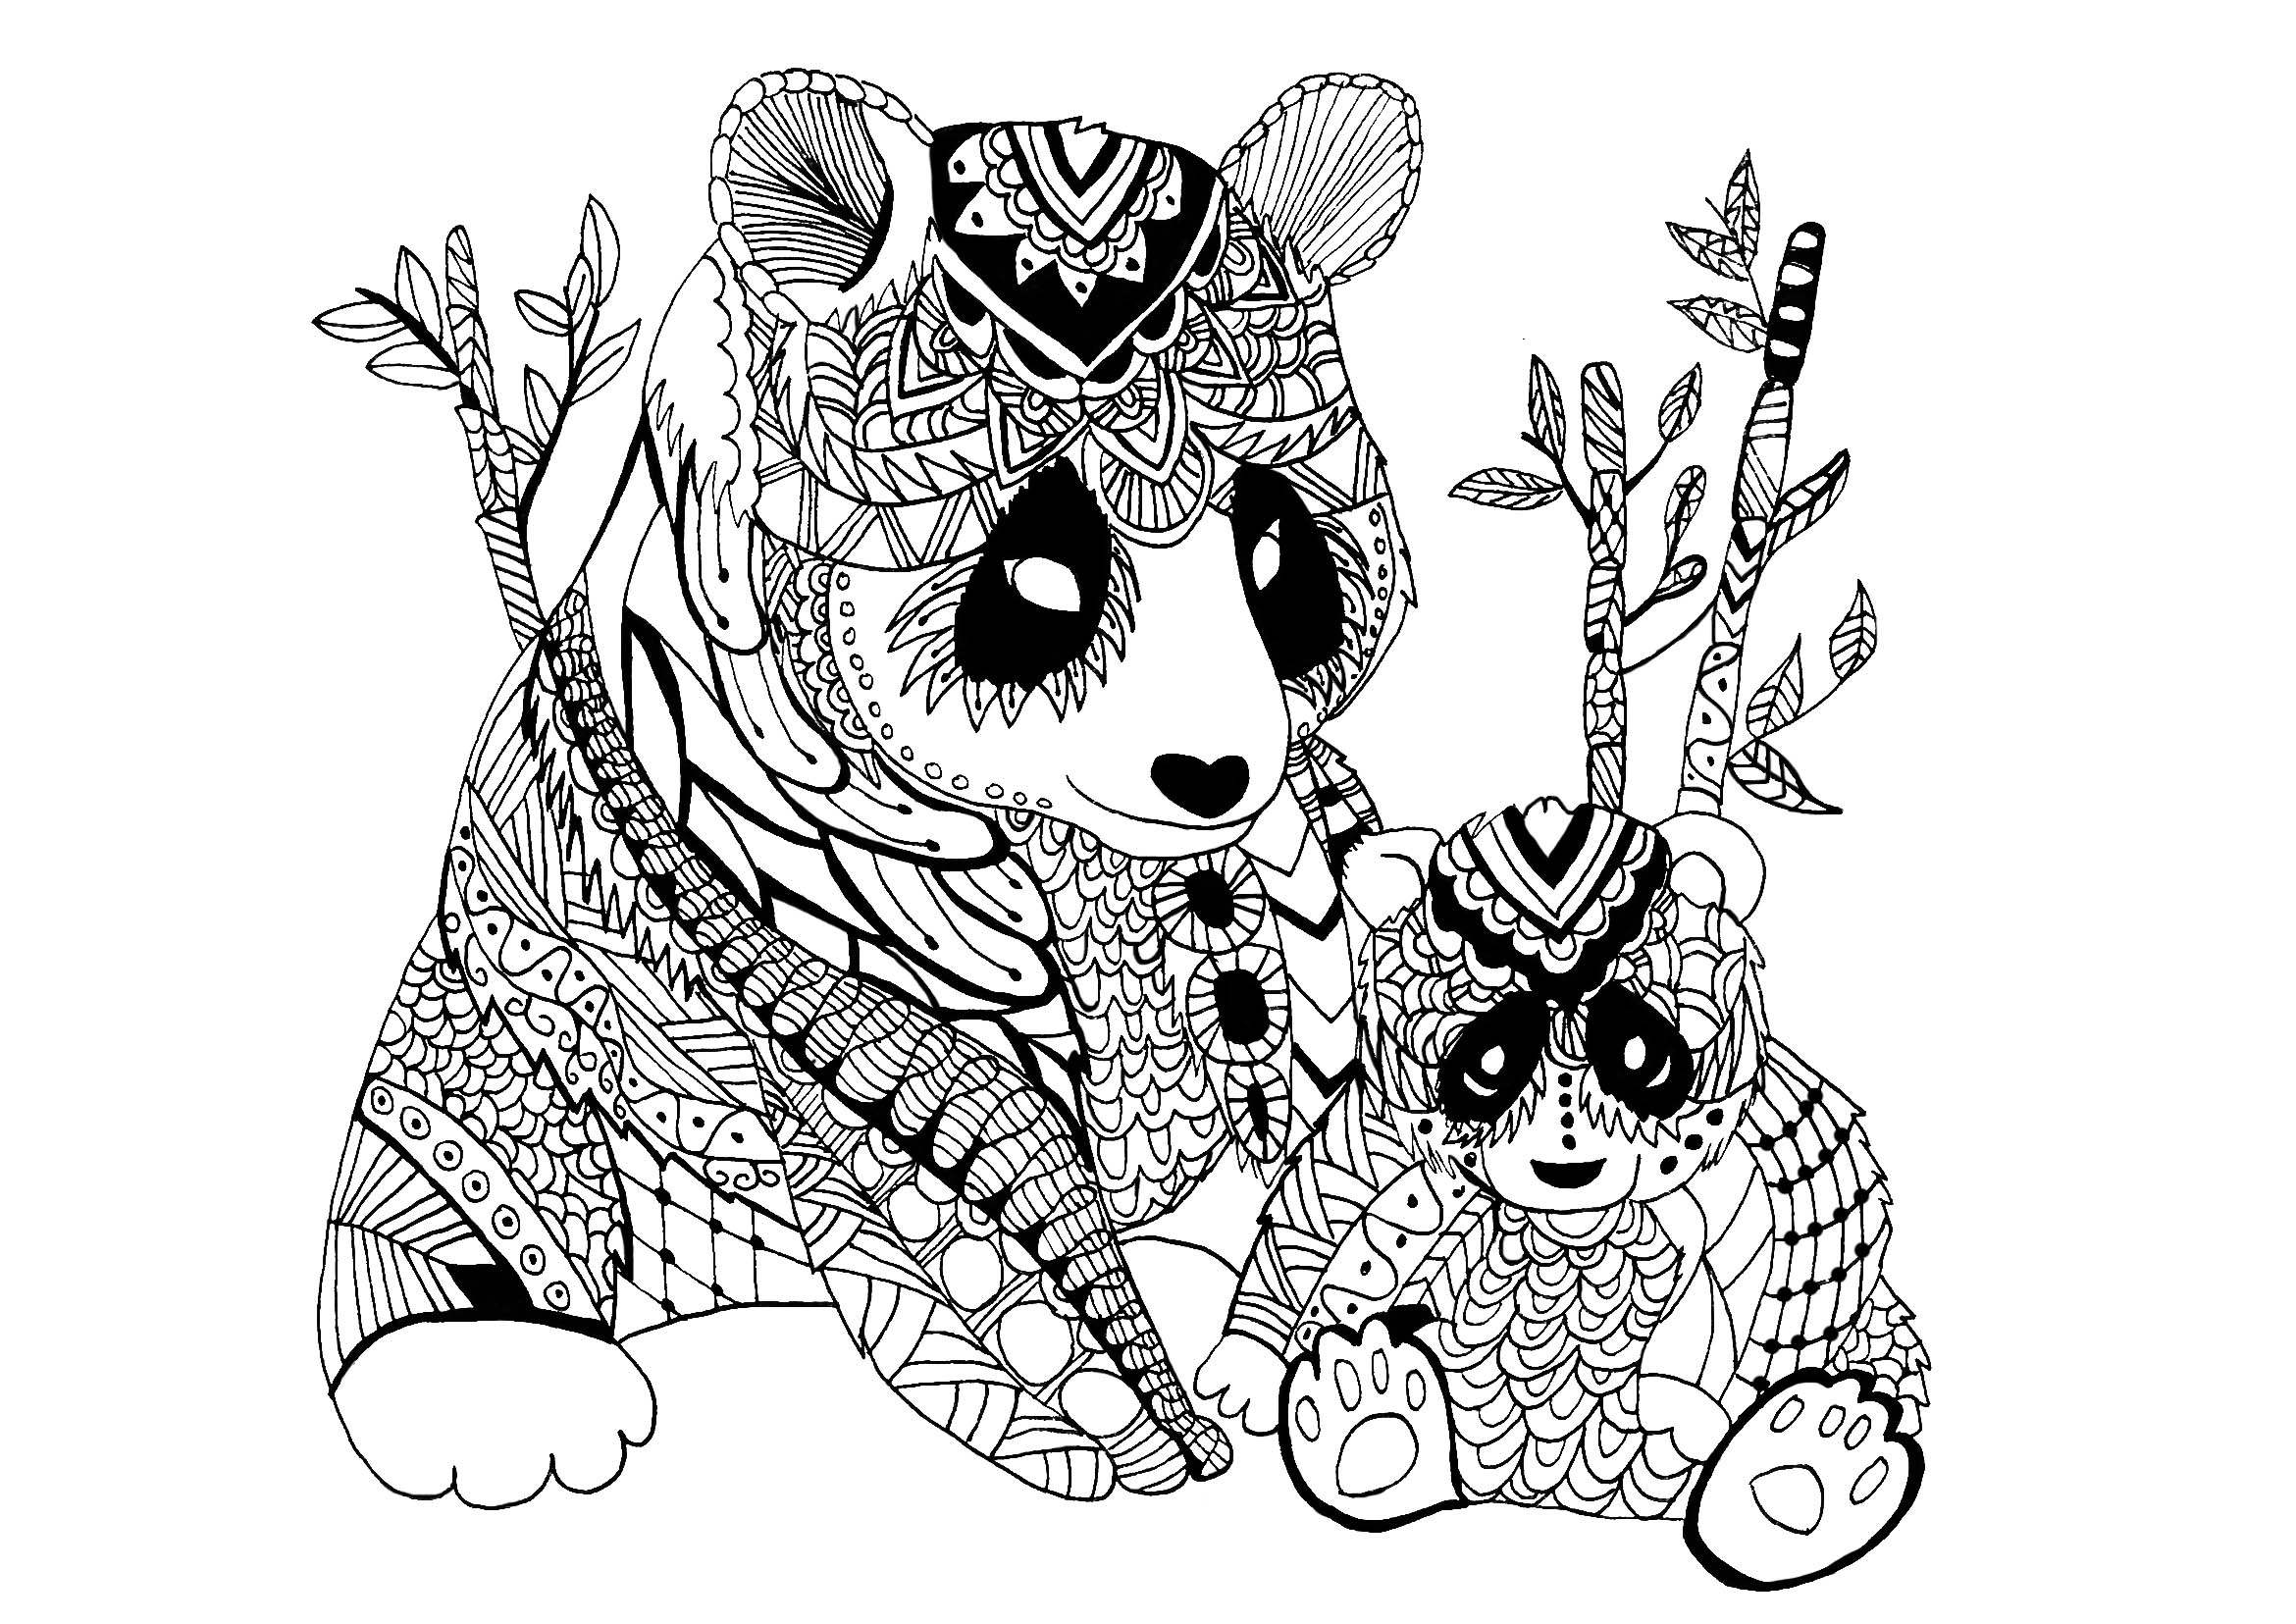 zentangle coloring pages free printable zentangle to download for free zentangle kids coloring pages pages printable free coloring zentangle